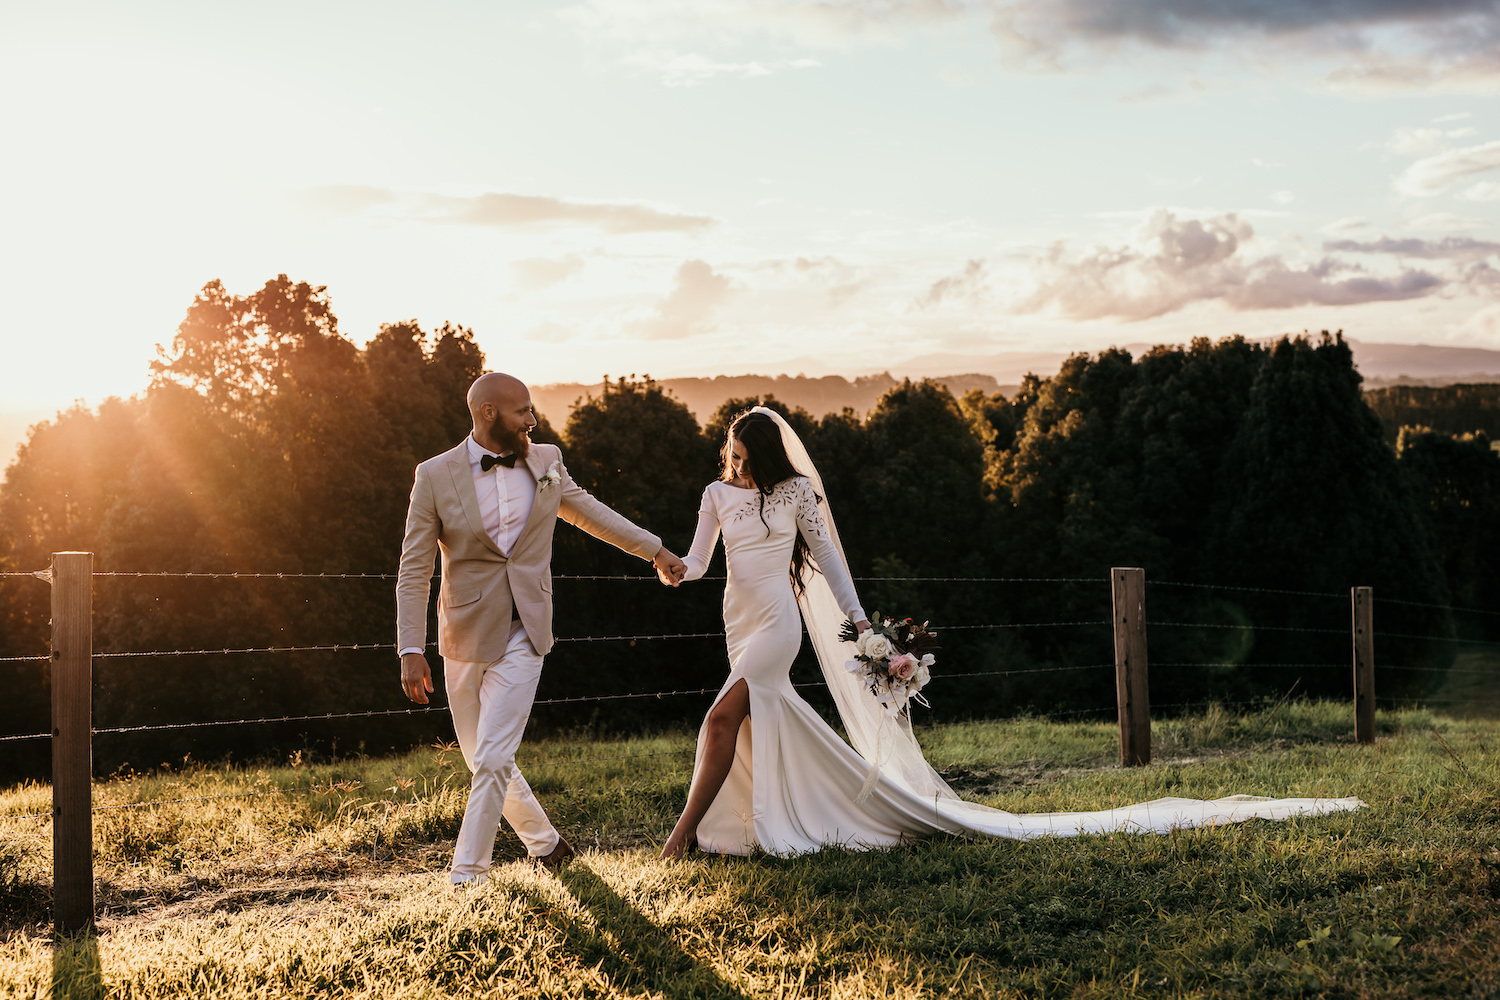 Bride and groom / Micro wedding photography at Temple Farmhouse